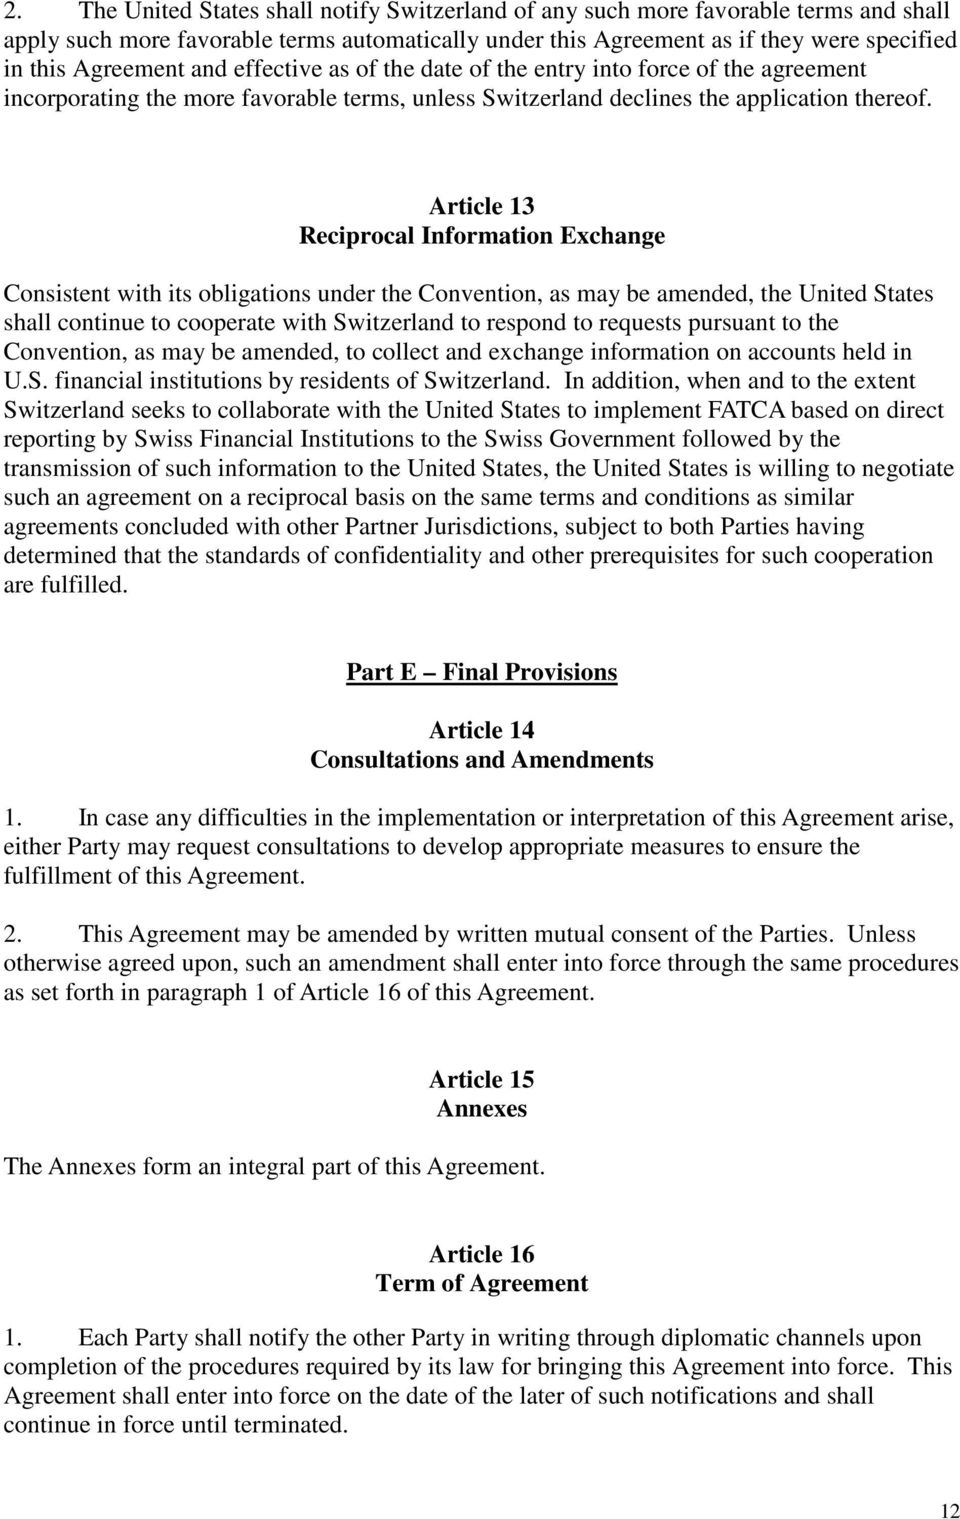 Article 13 Reciprocal Information Exchange Consistent with its obligations under the Convention, as may be amended, the United States shall continue to cooperate with Switzerland to respond to